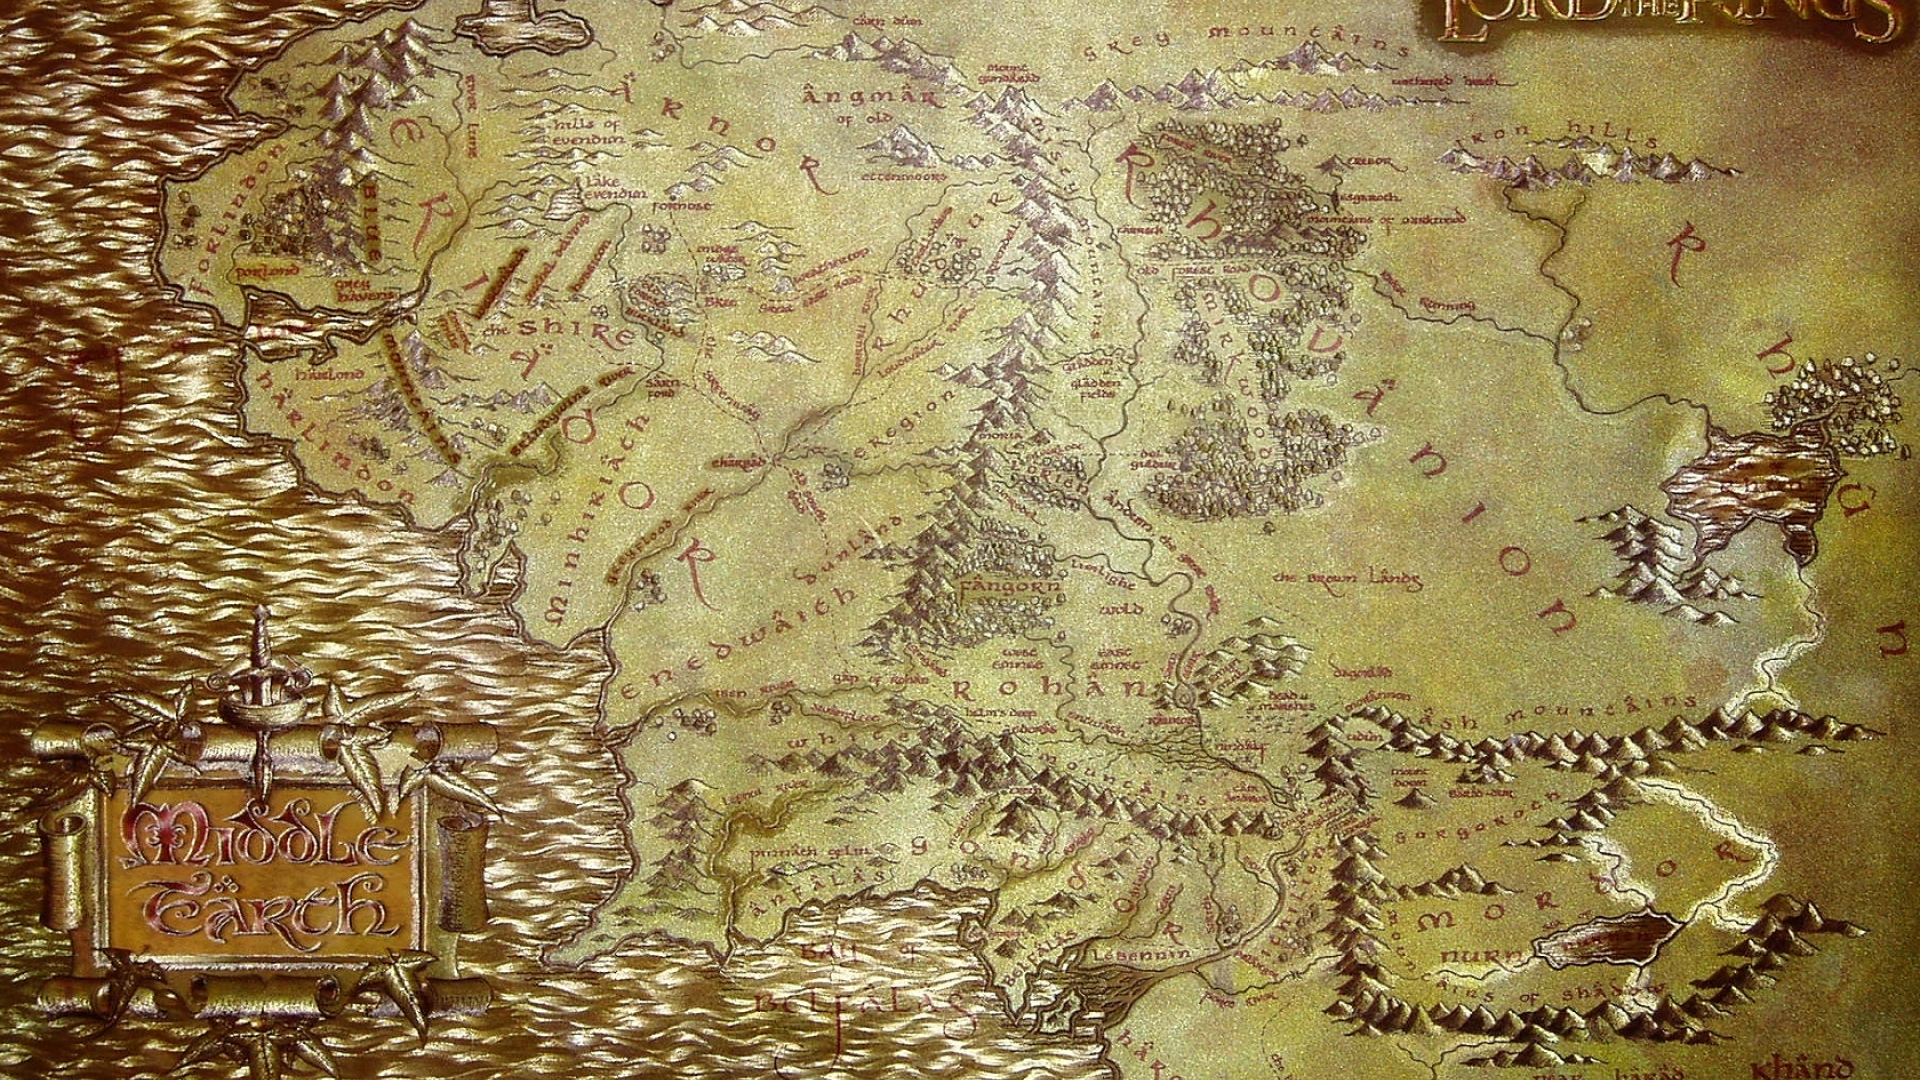 Free Download 1920x1200 The Lord Of The Rings Maps Middle Earth